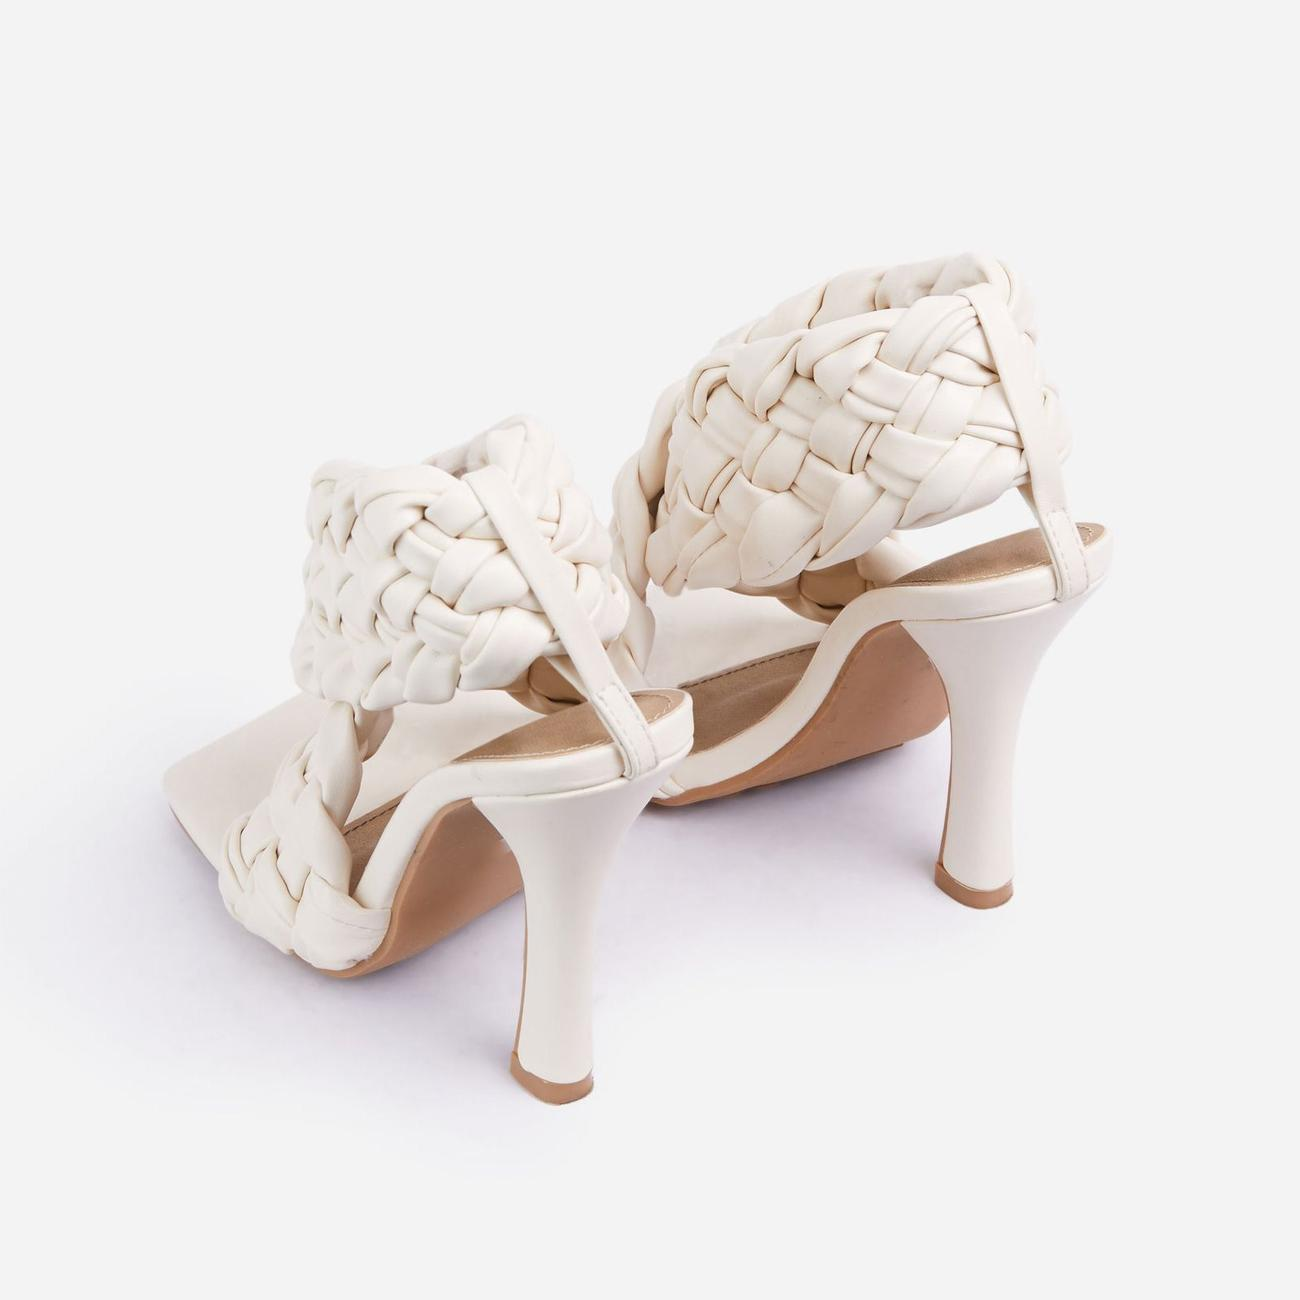 Impress Square Toe Woven Wrap Heel In Nude Faux Leather Image 3